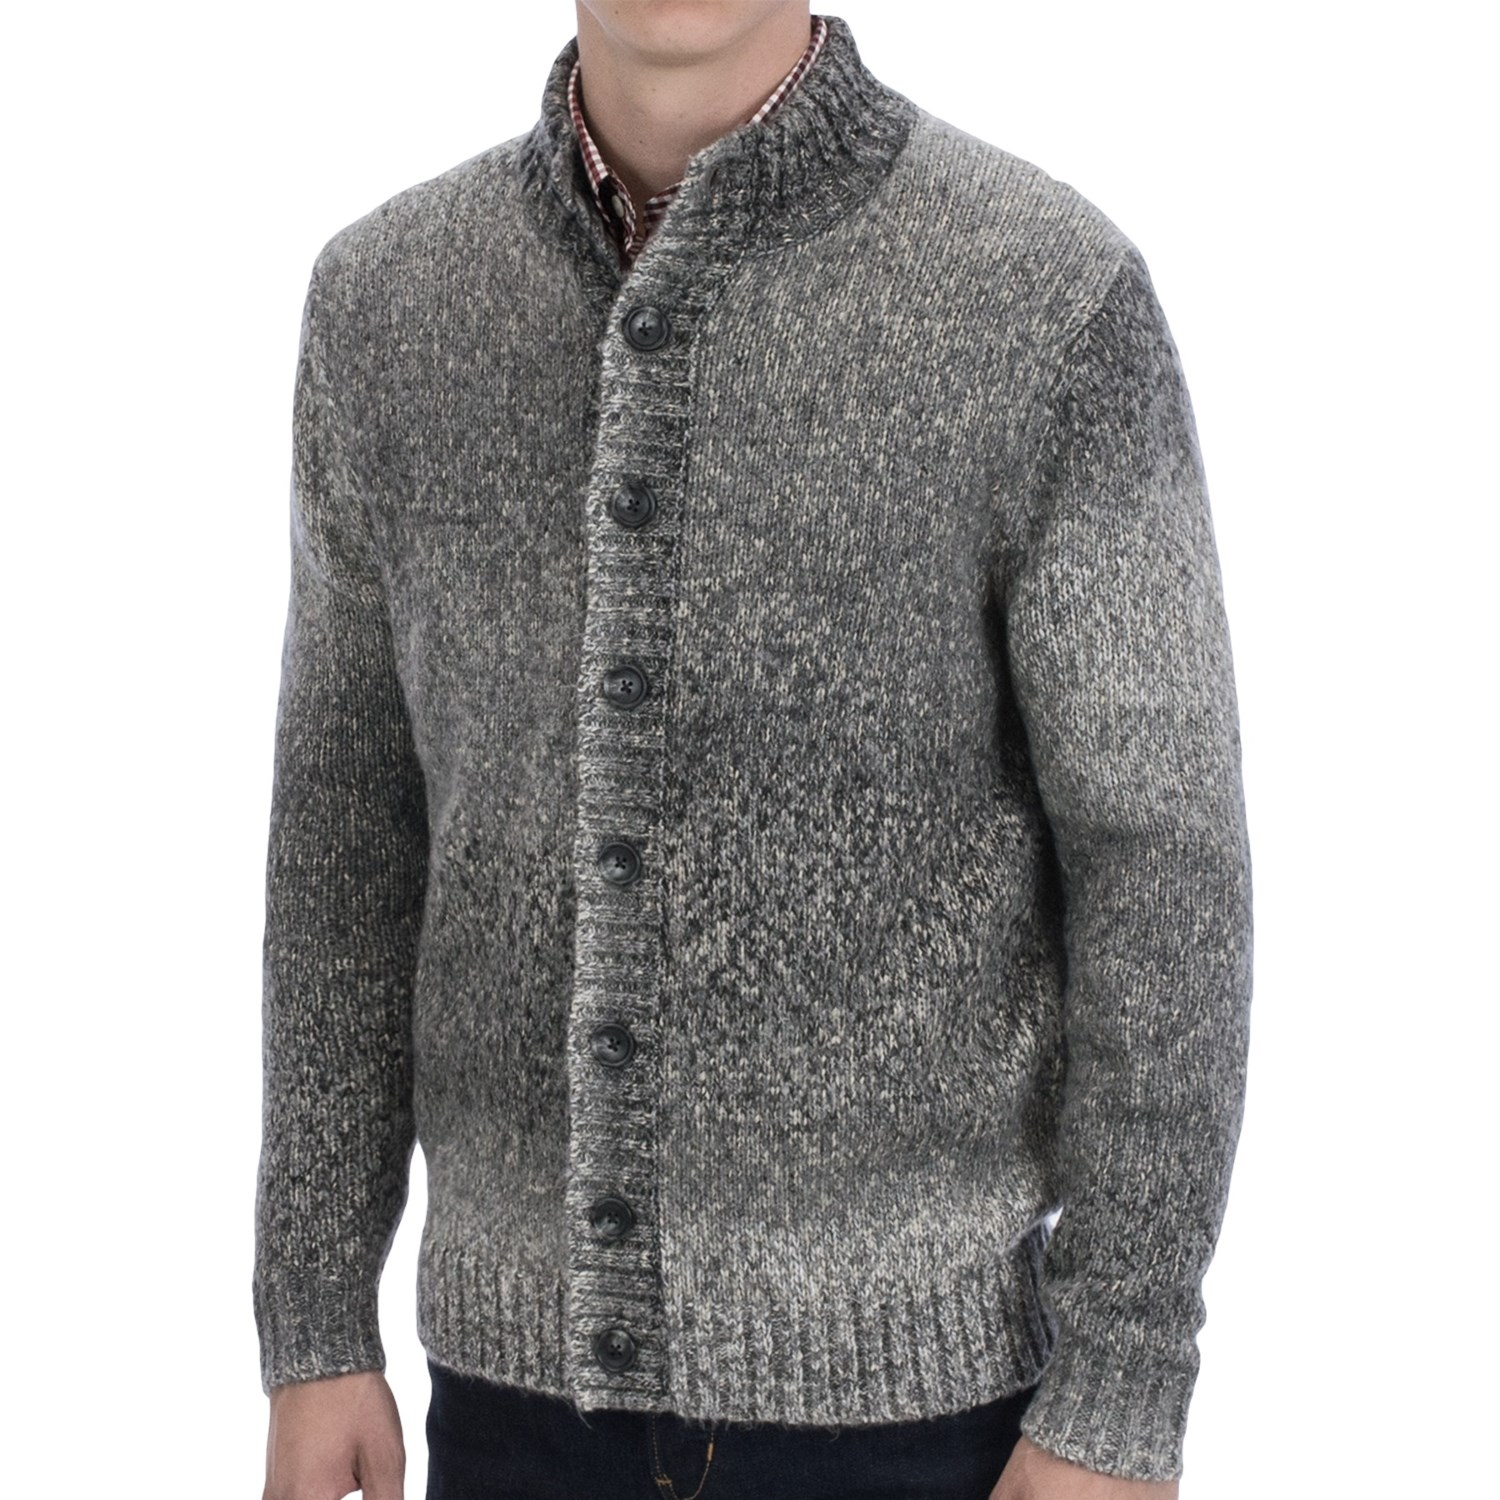 Men's Cardigan Sweaters: Free Shipping on orders over $45 at 0549sahibi.tk - Your Online Men's Sweaters Store! Get 5% in rewards with Club O!